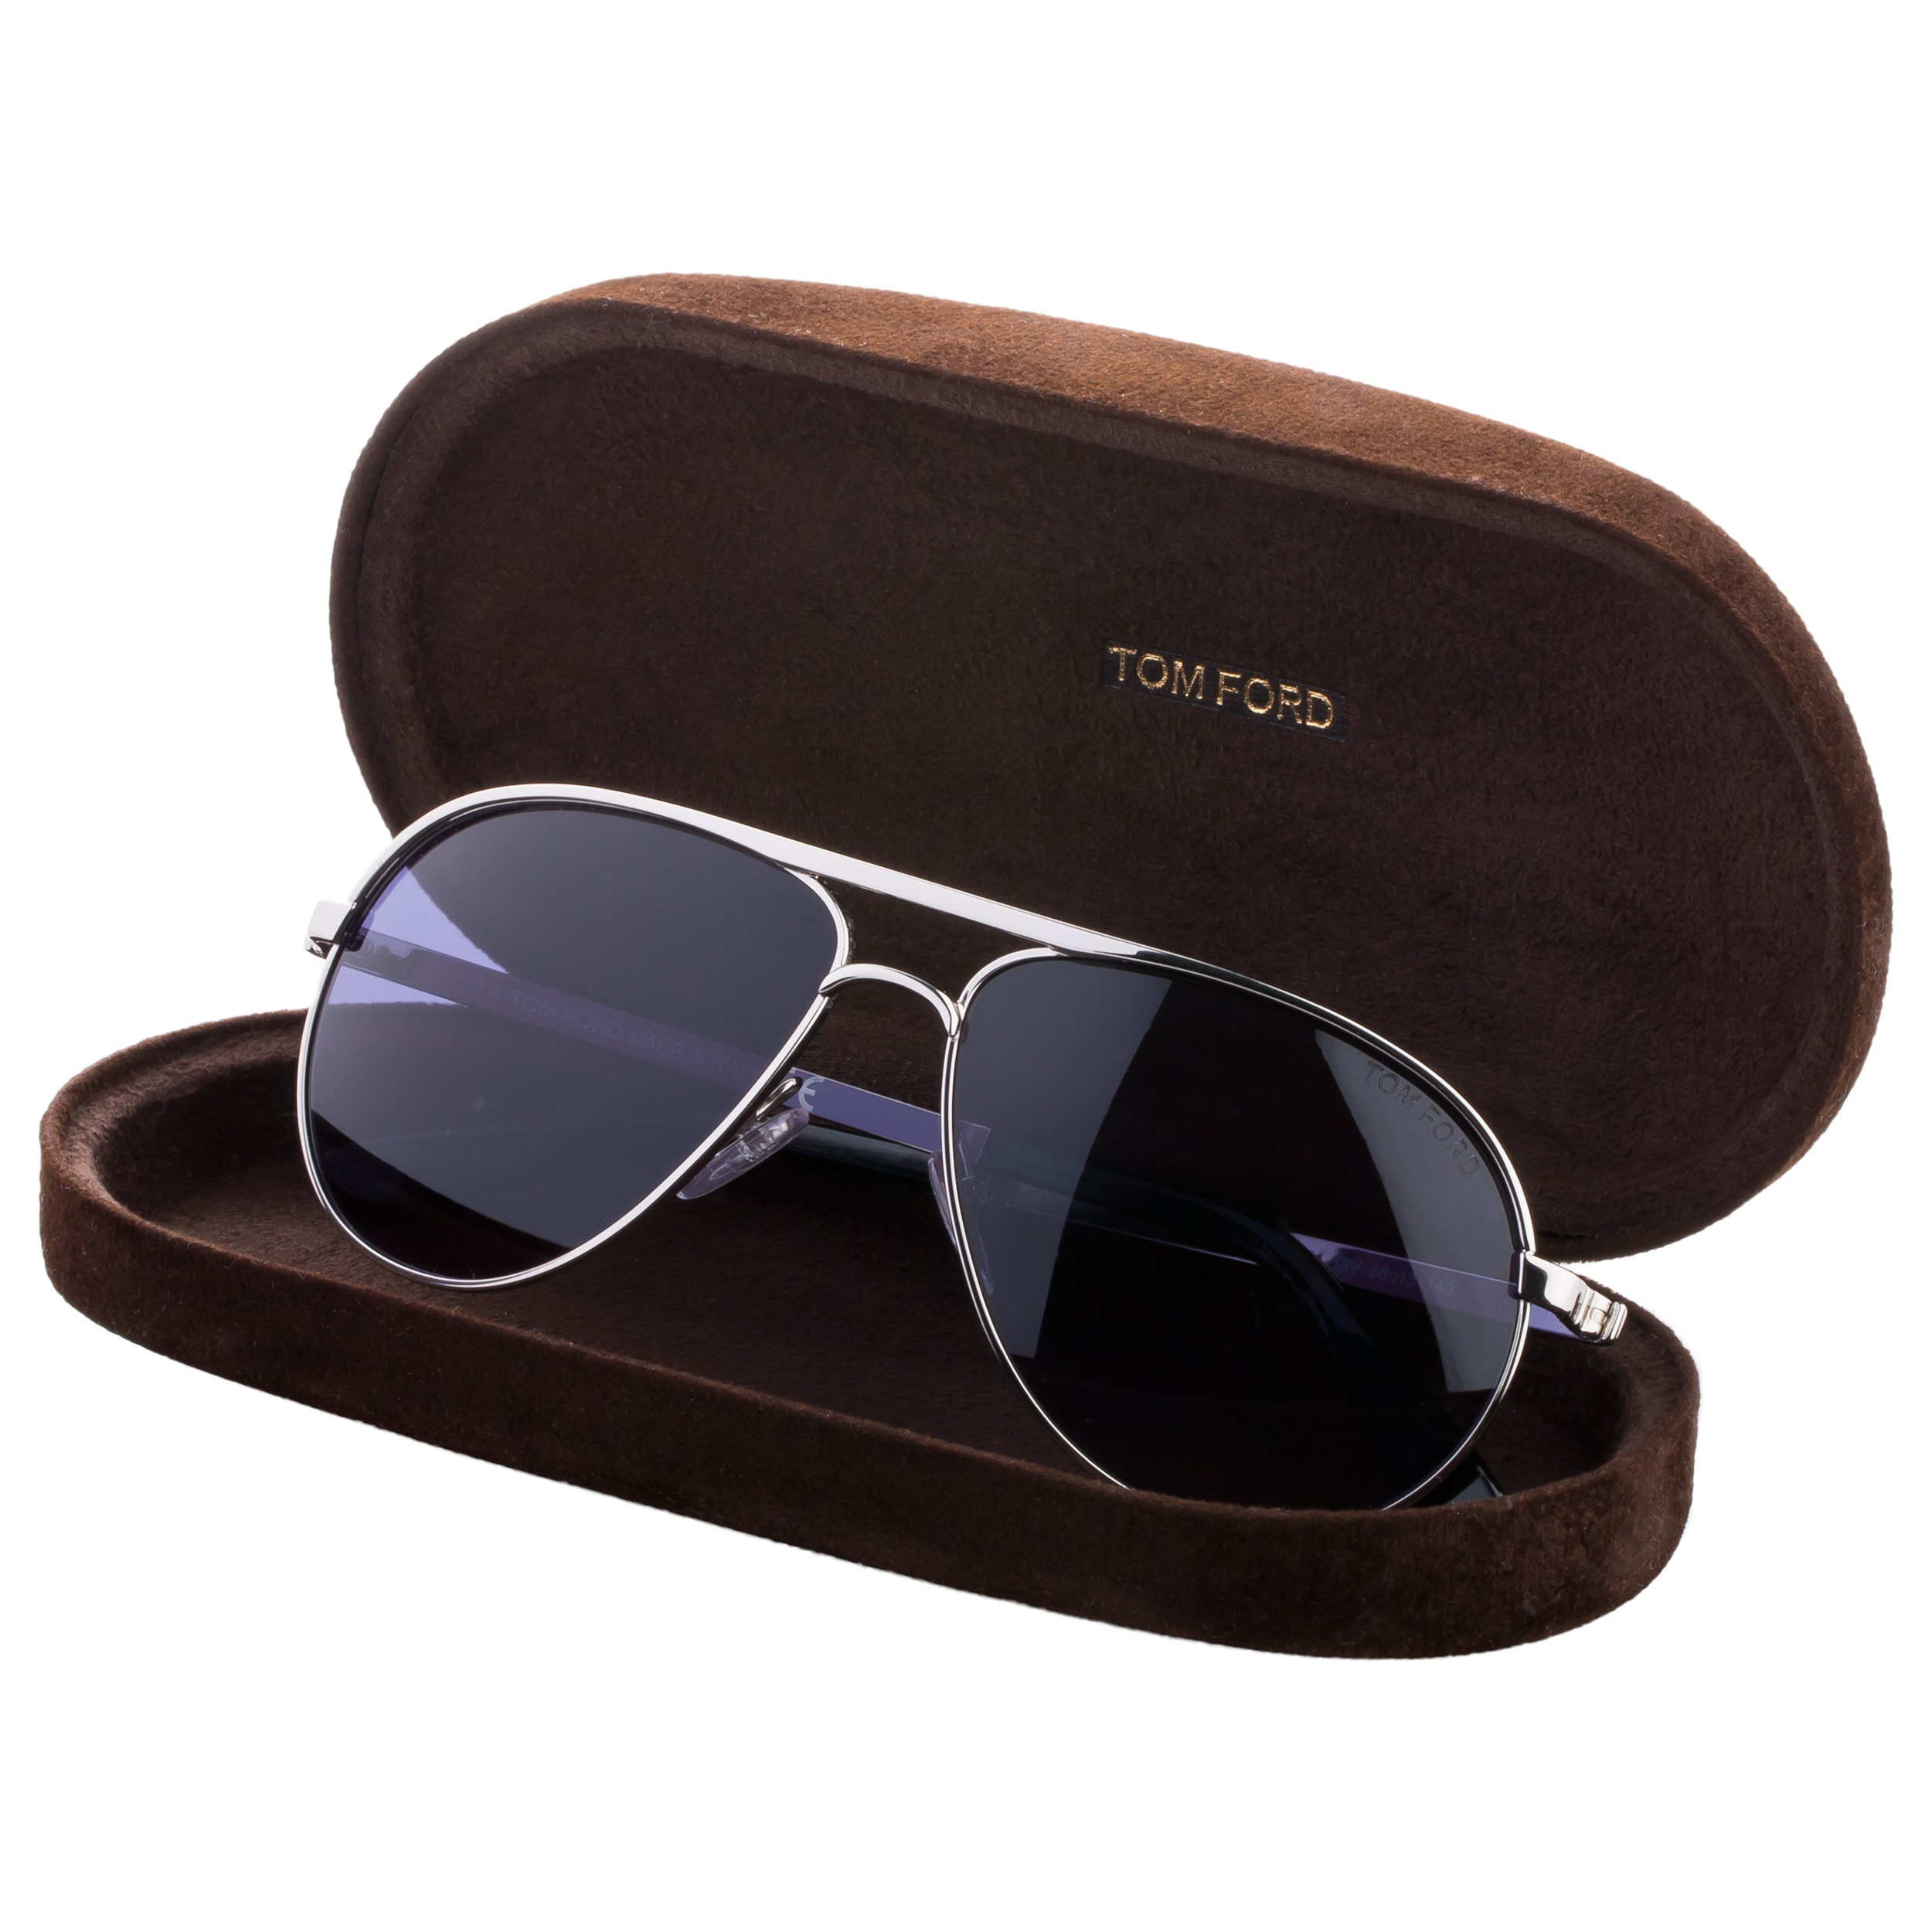 0fdaae5d6c3c Shop Tom Ford Marko TF144 18V Unisex Silver Frame Blue Lens Aviator  Sunglasses - Free Shipping Today - Overstock - 9375422